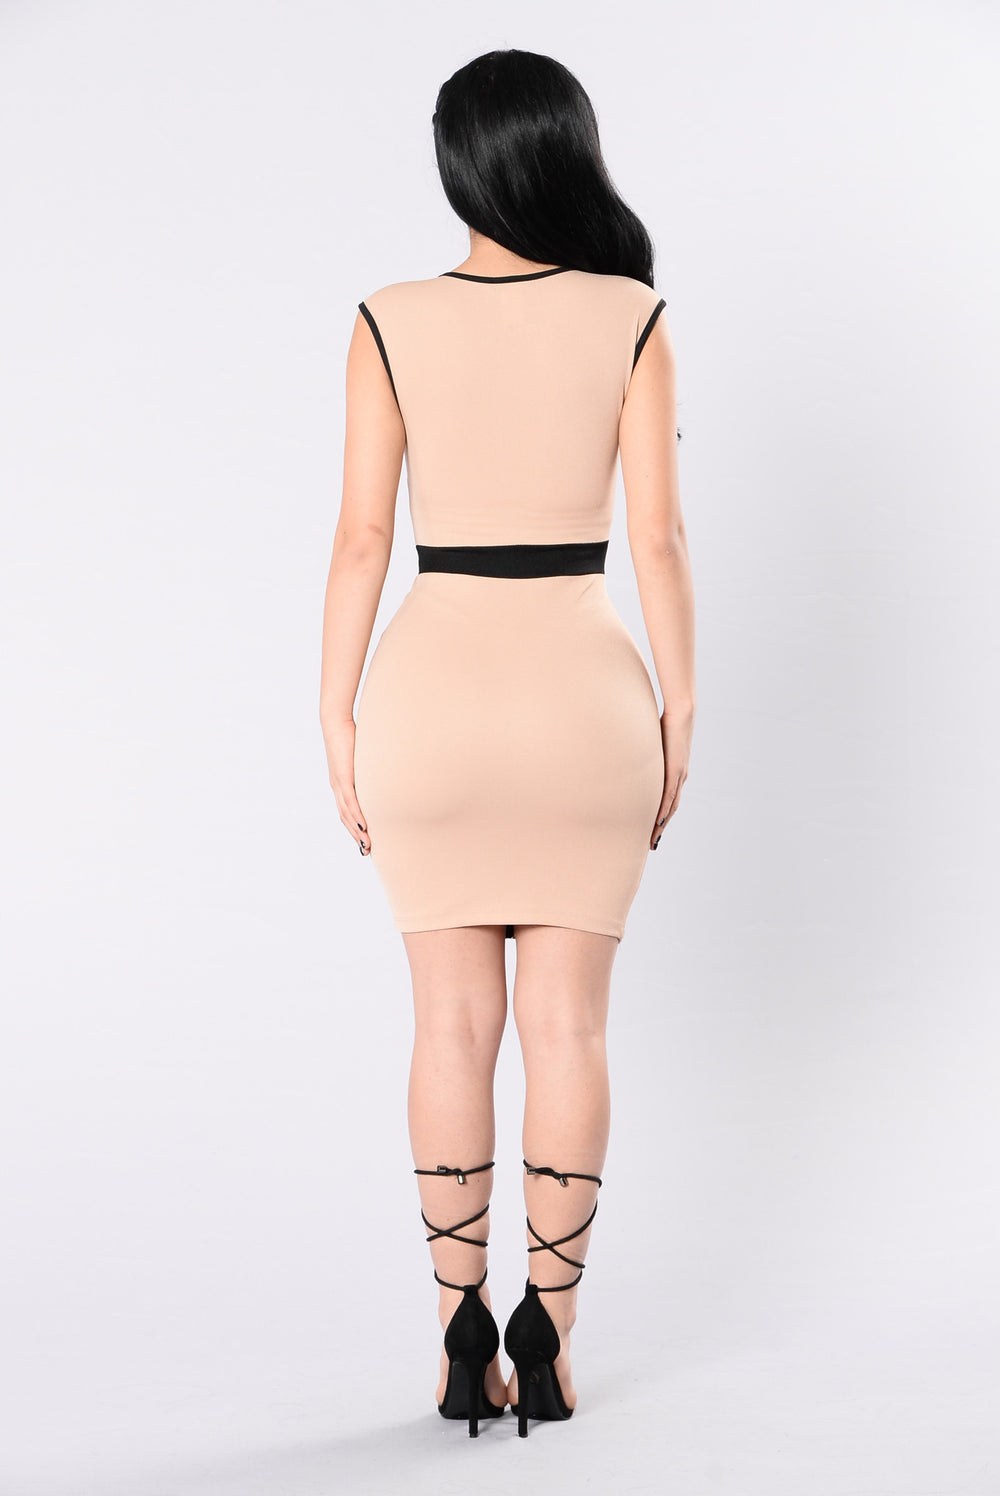 Slim Thick Dress - Mocha